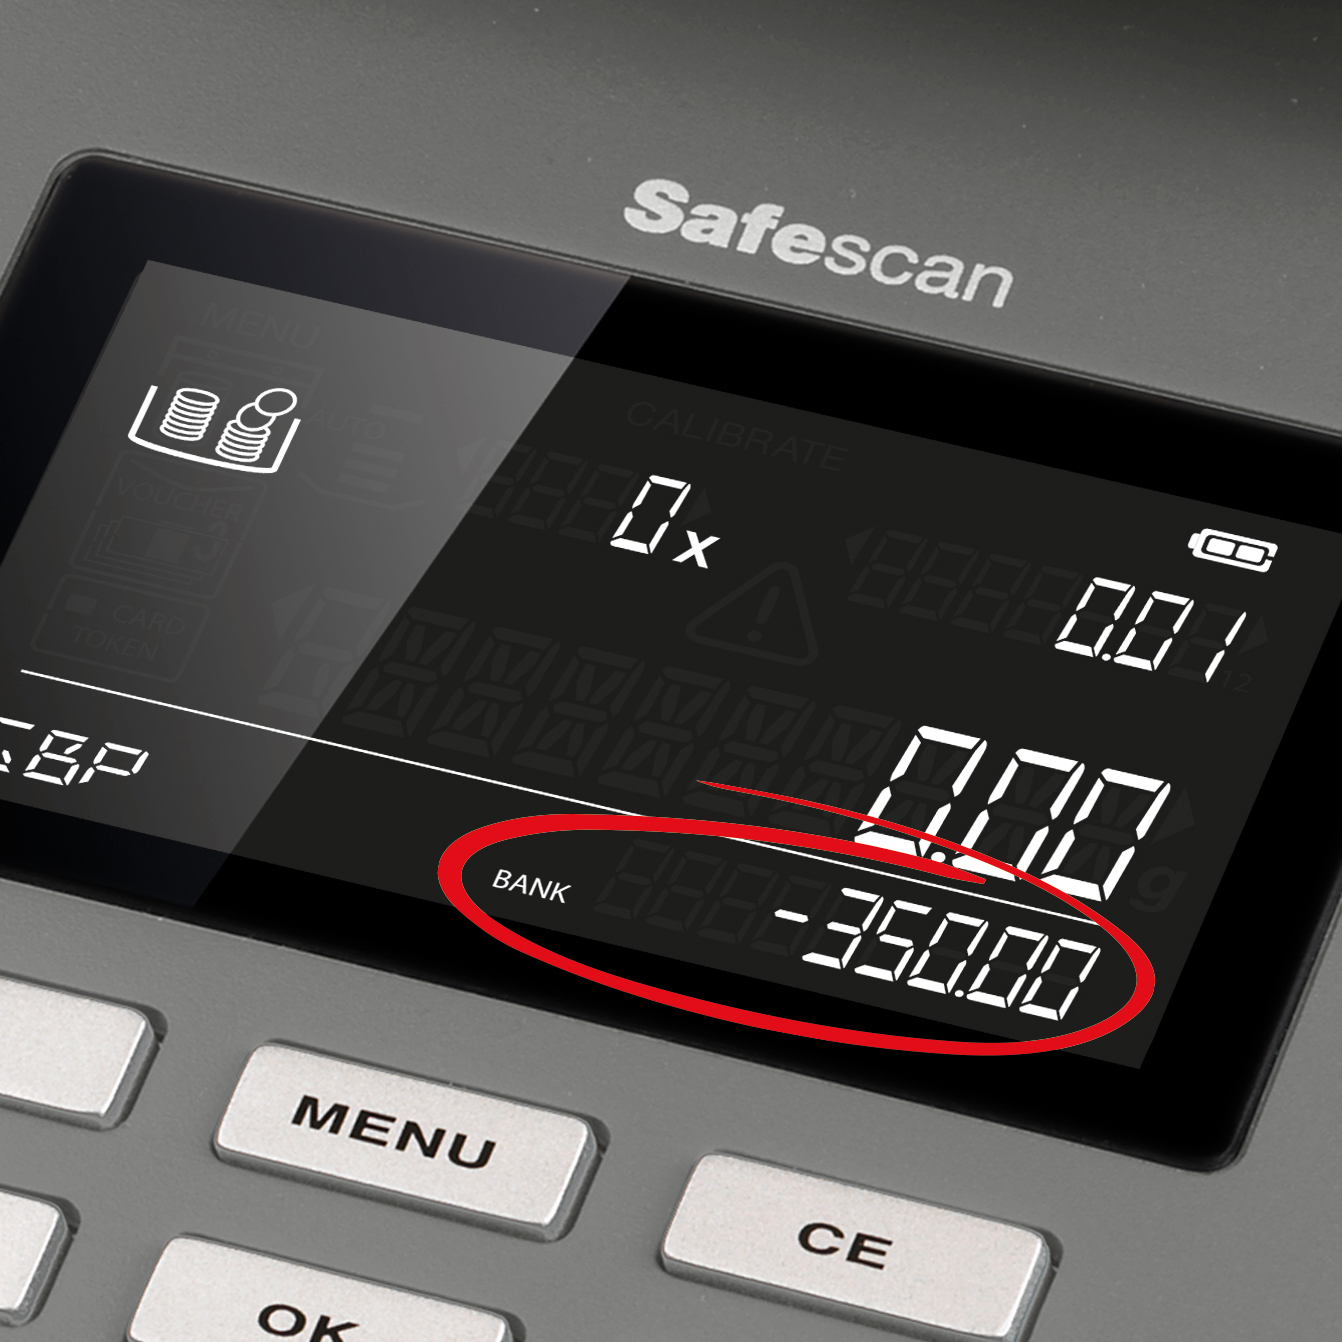 Safescan 6165 Money Counting Scale 0.66kg L223xW142xH147mm Black/Grey Ref 131-0573